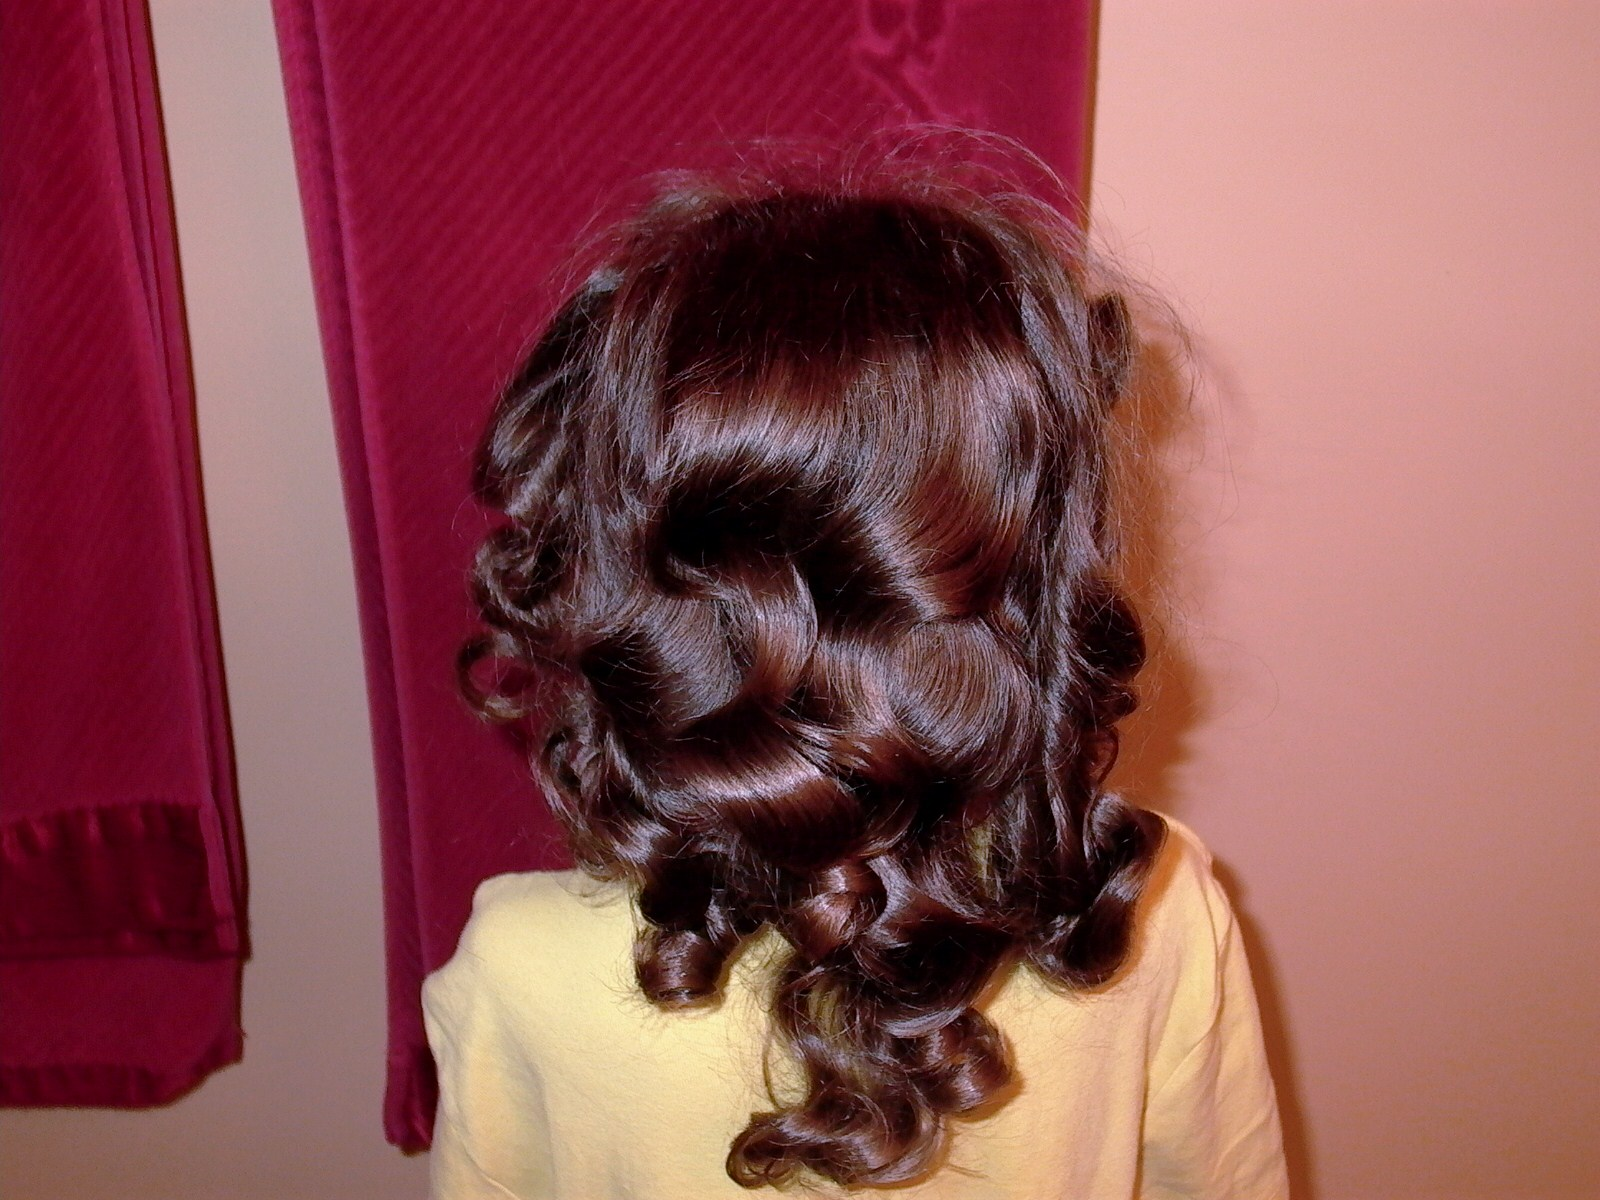 ... Girl's Hairstyles: Video Tutorial: How to use Foam or Sponge Curlers